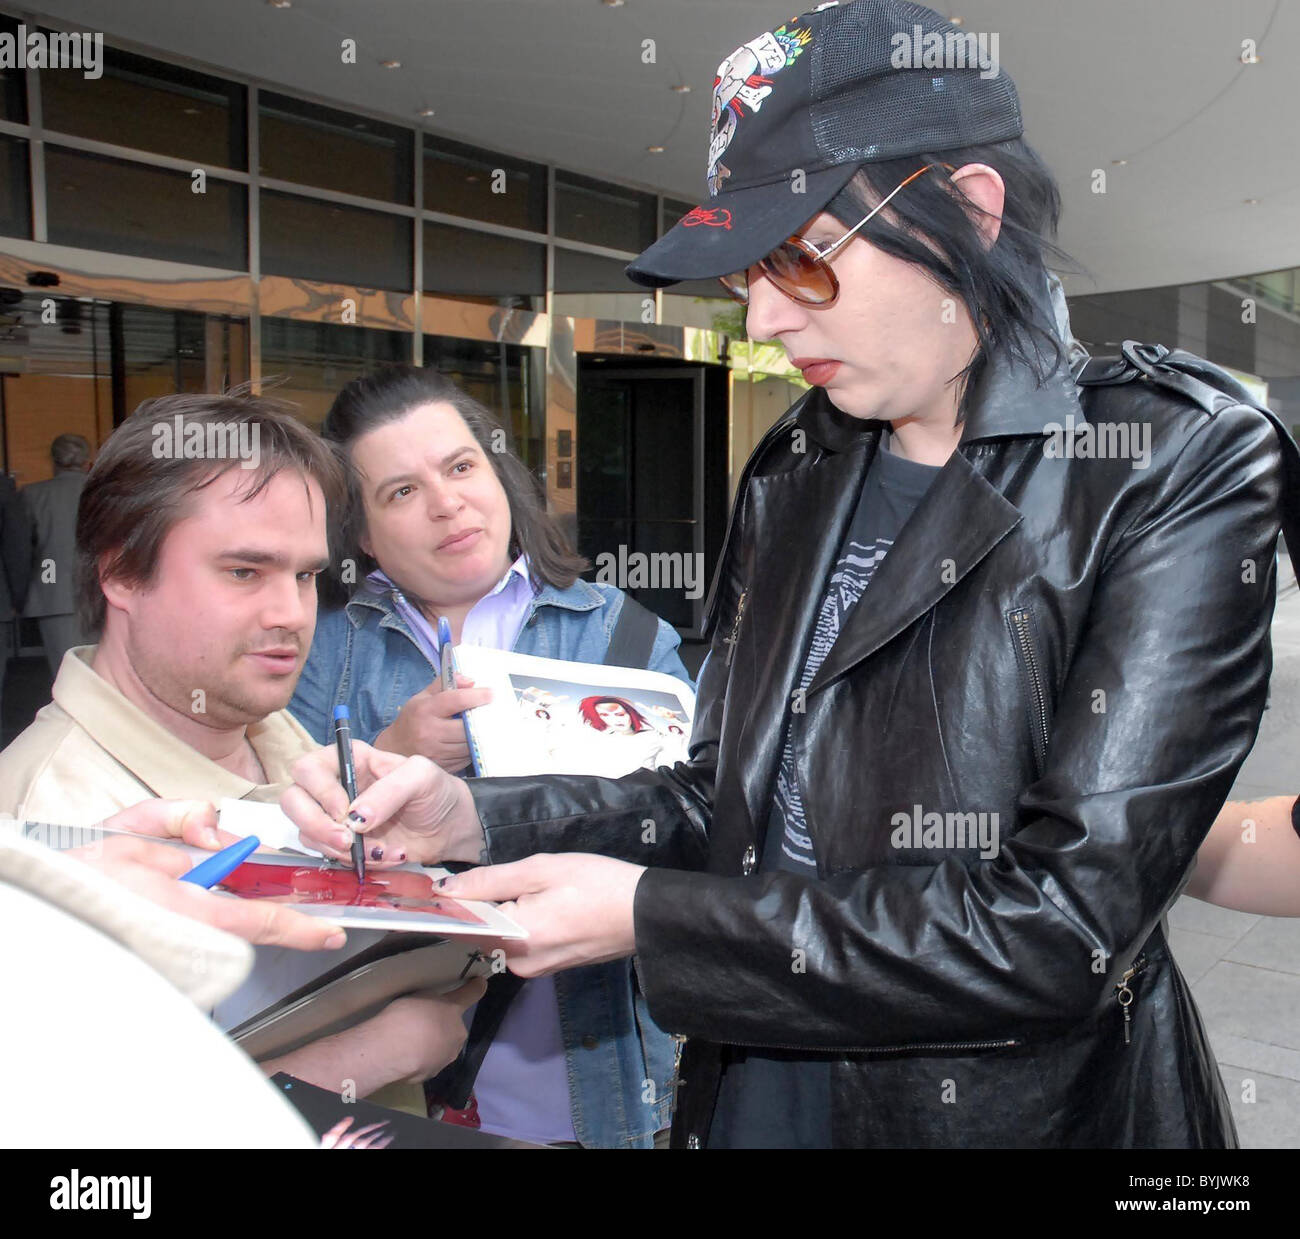 Marilyn Manson without make-up leaving the Hyatt Hotel and signing autographs Berlin, Germany - 23.04.07 Chuck Yunck/ Stock Photo